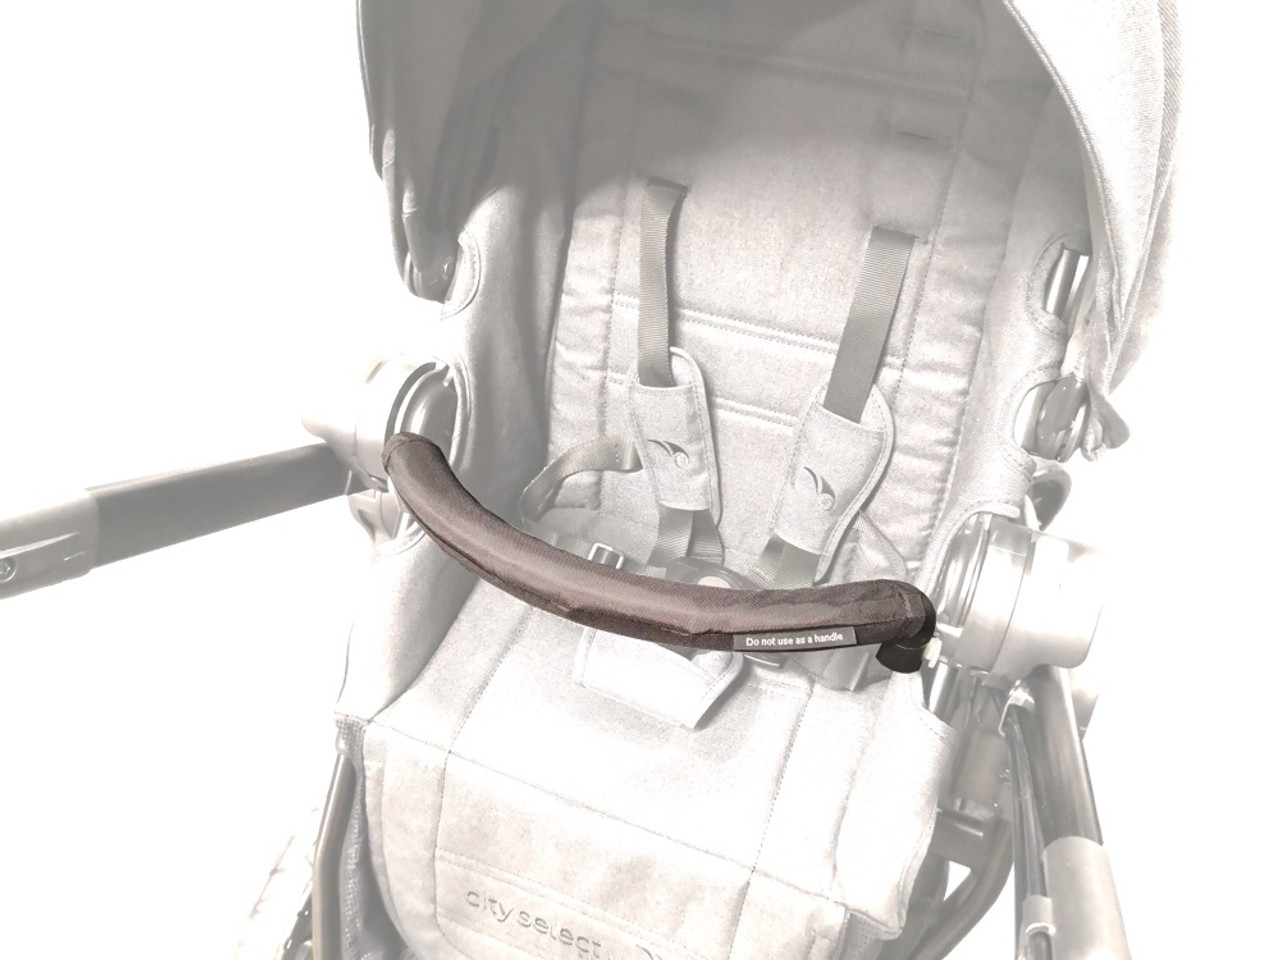 The City Select LUX Belly Bar gives your child a safe and comfortable area to hold on to while strolling.